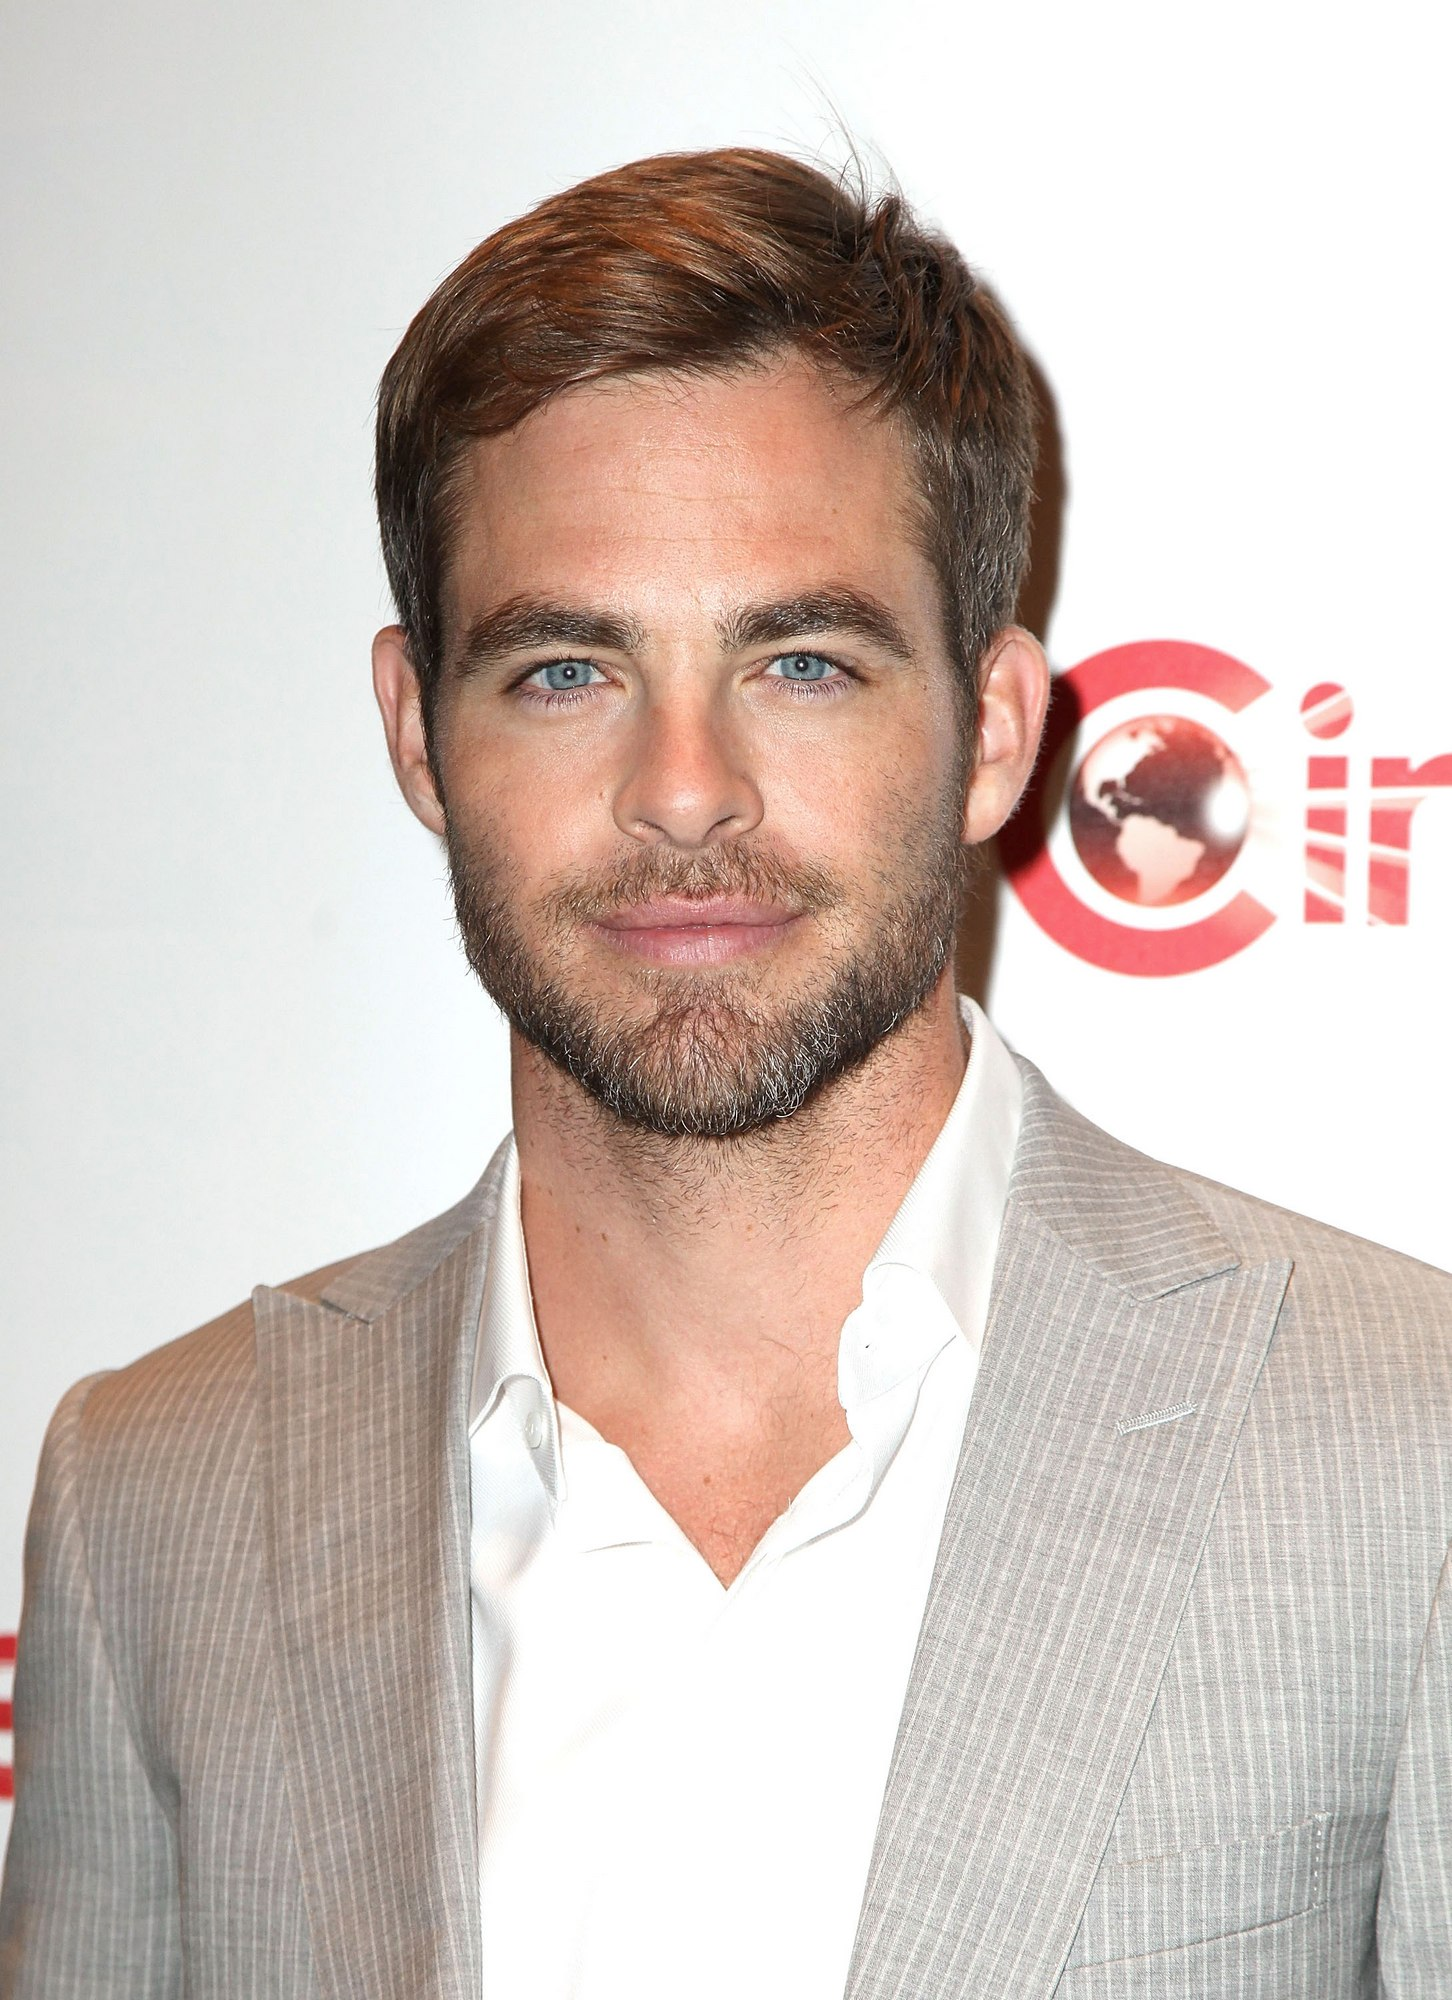 Chris Pine picture image